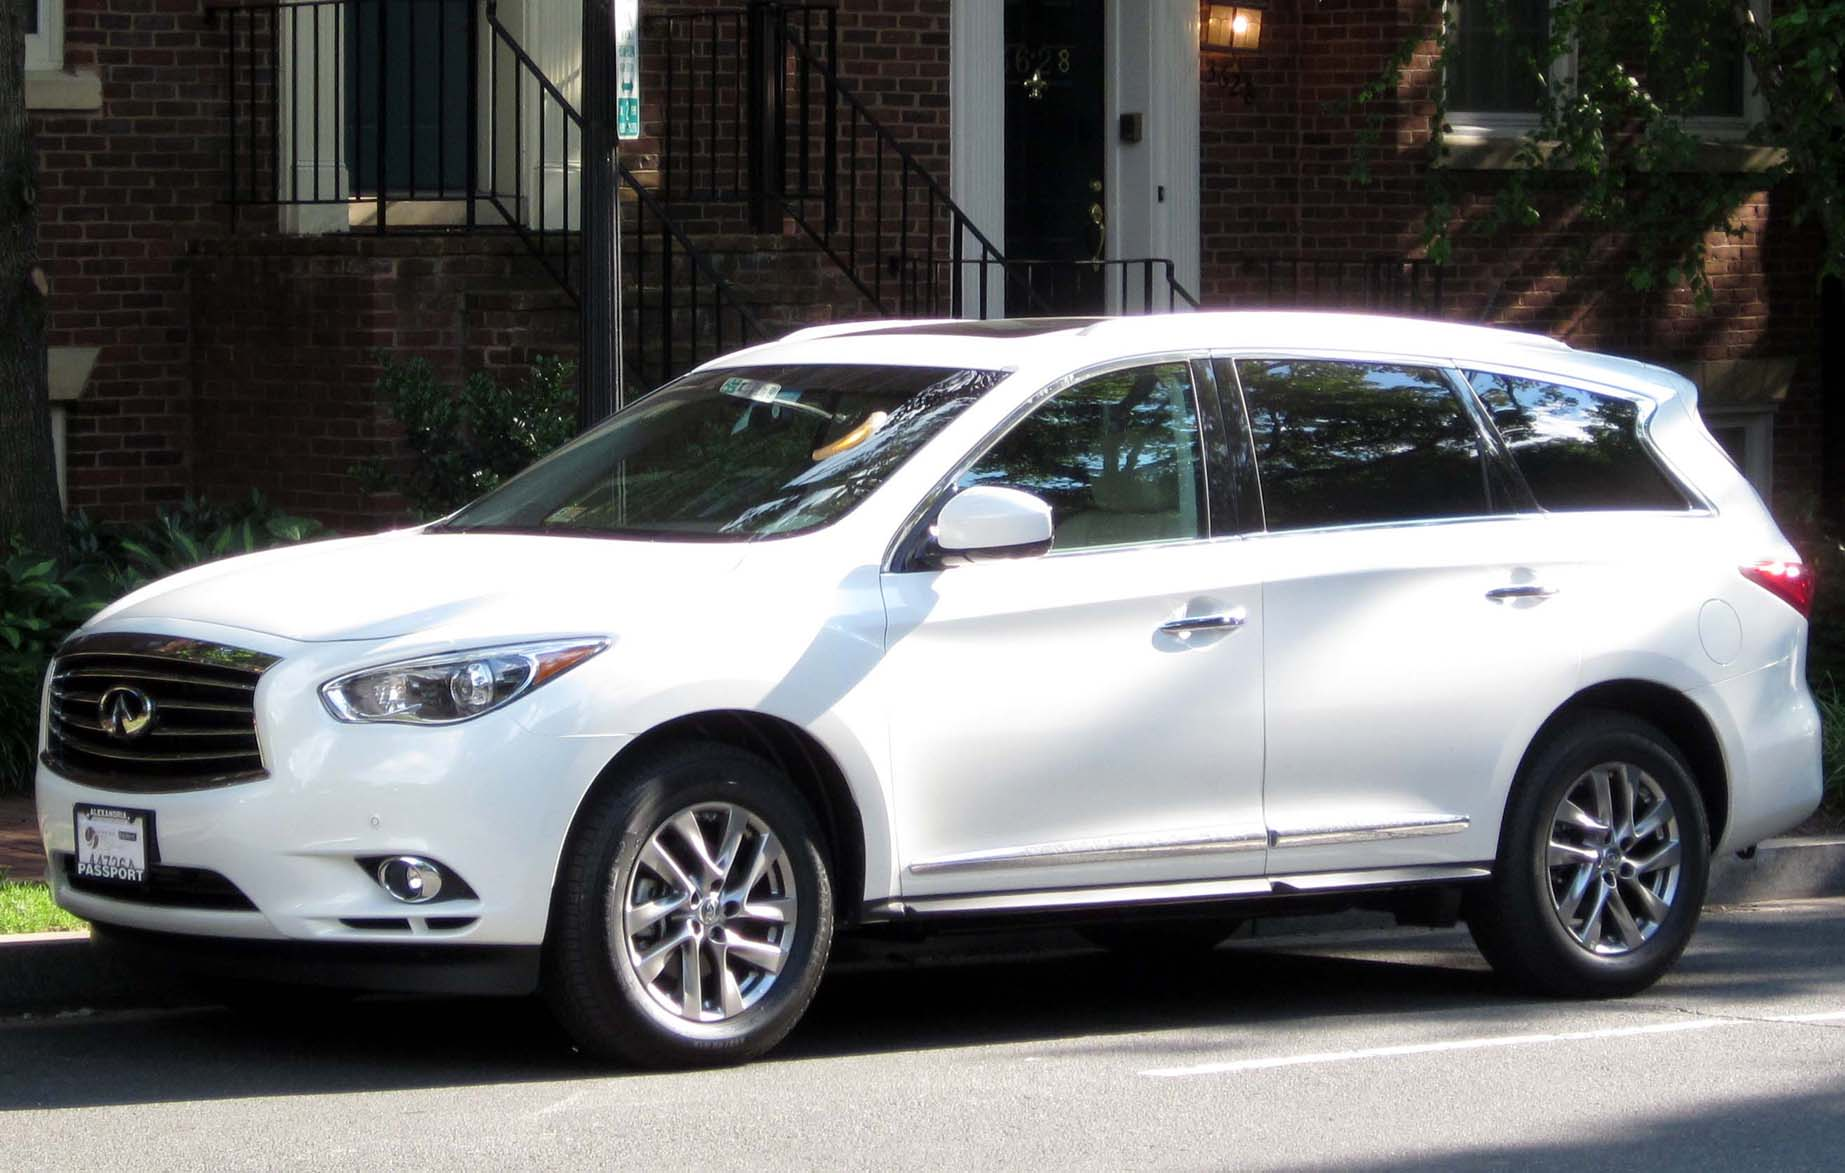 2020 Infiniti QX60 Limited Release Date, Specs And Price >> Infiniti Qx60 Wikipedia